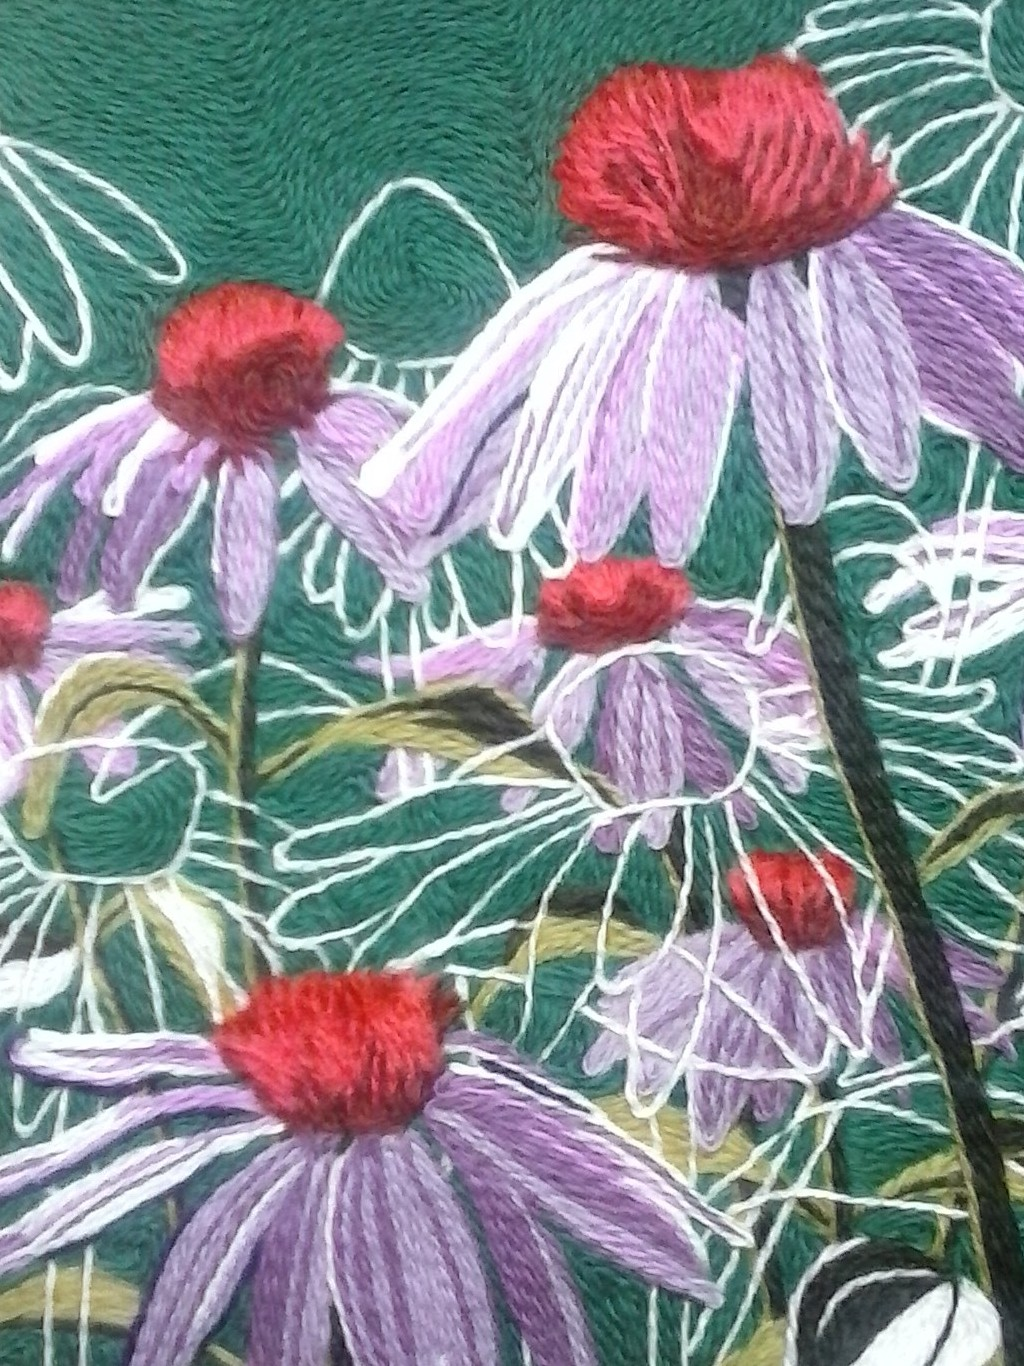 Detail of a textile artwork depicting purple cone flowers overlaid with white contour drawings